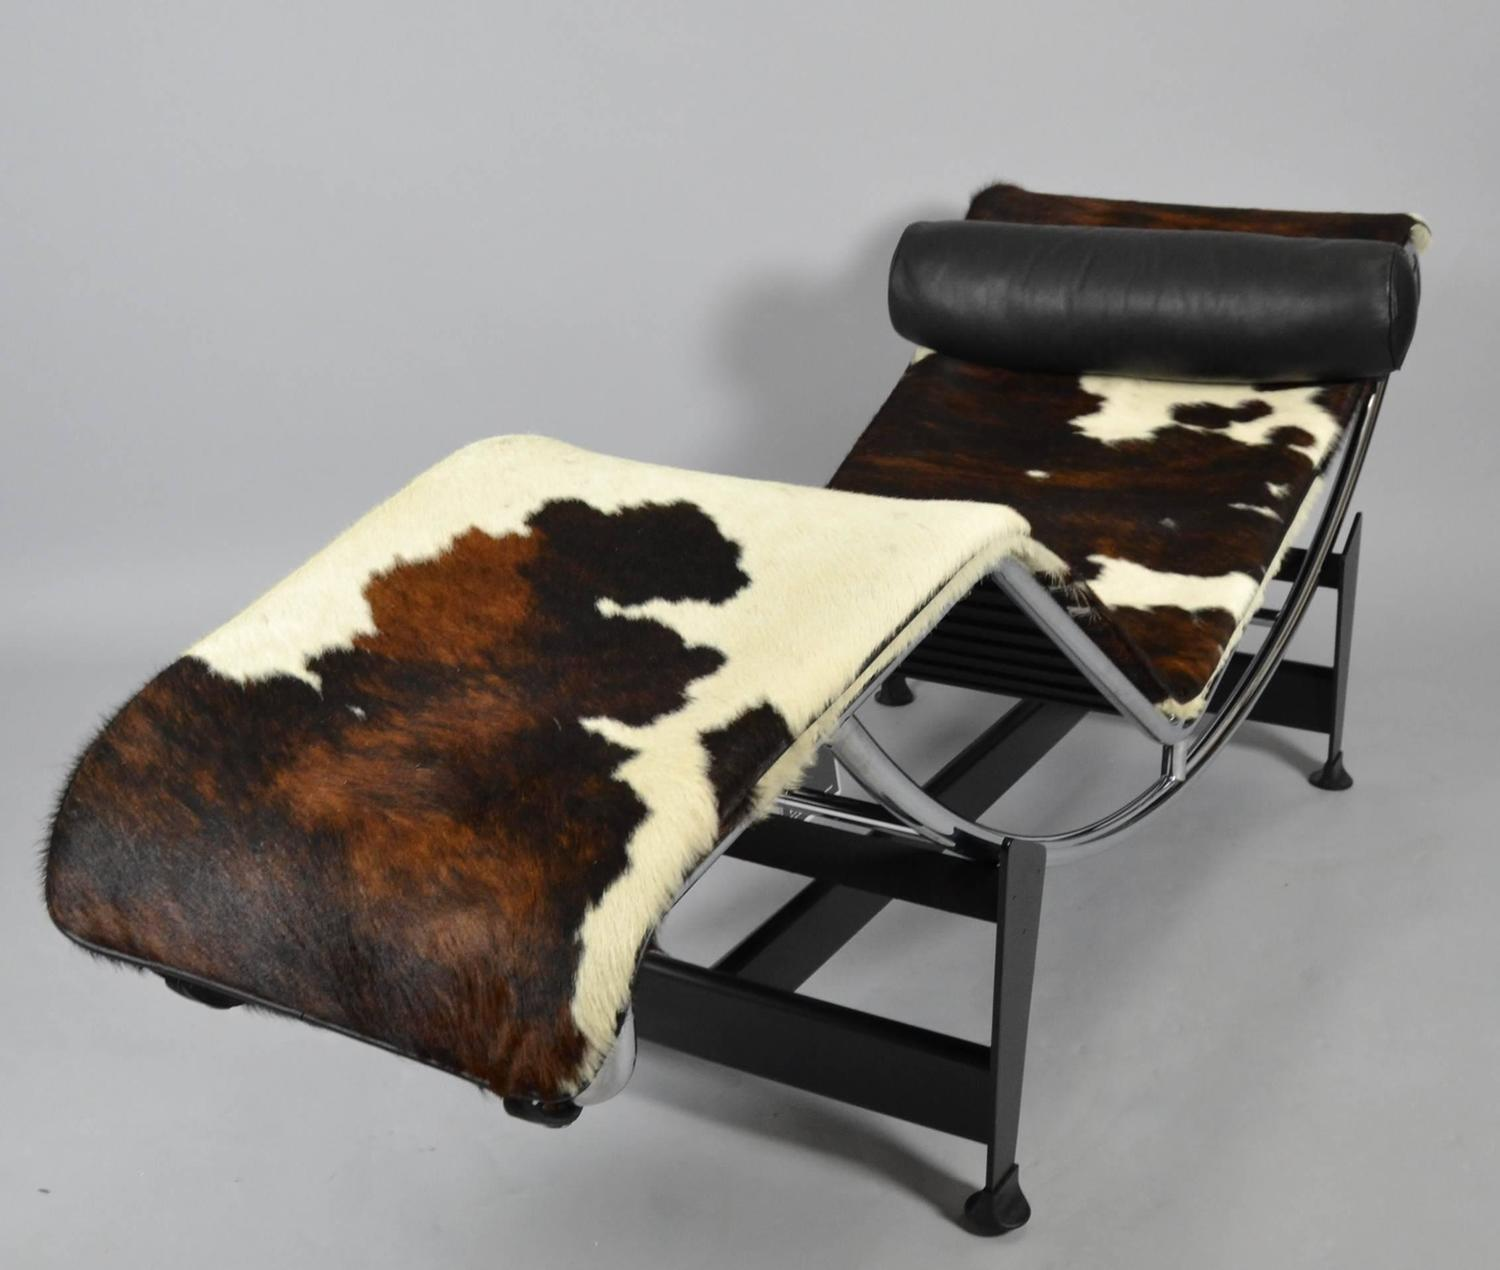 Le corbusier pierre jeanneret and charlotte perriand lc4 for Chaise longue le corbusier vache